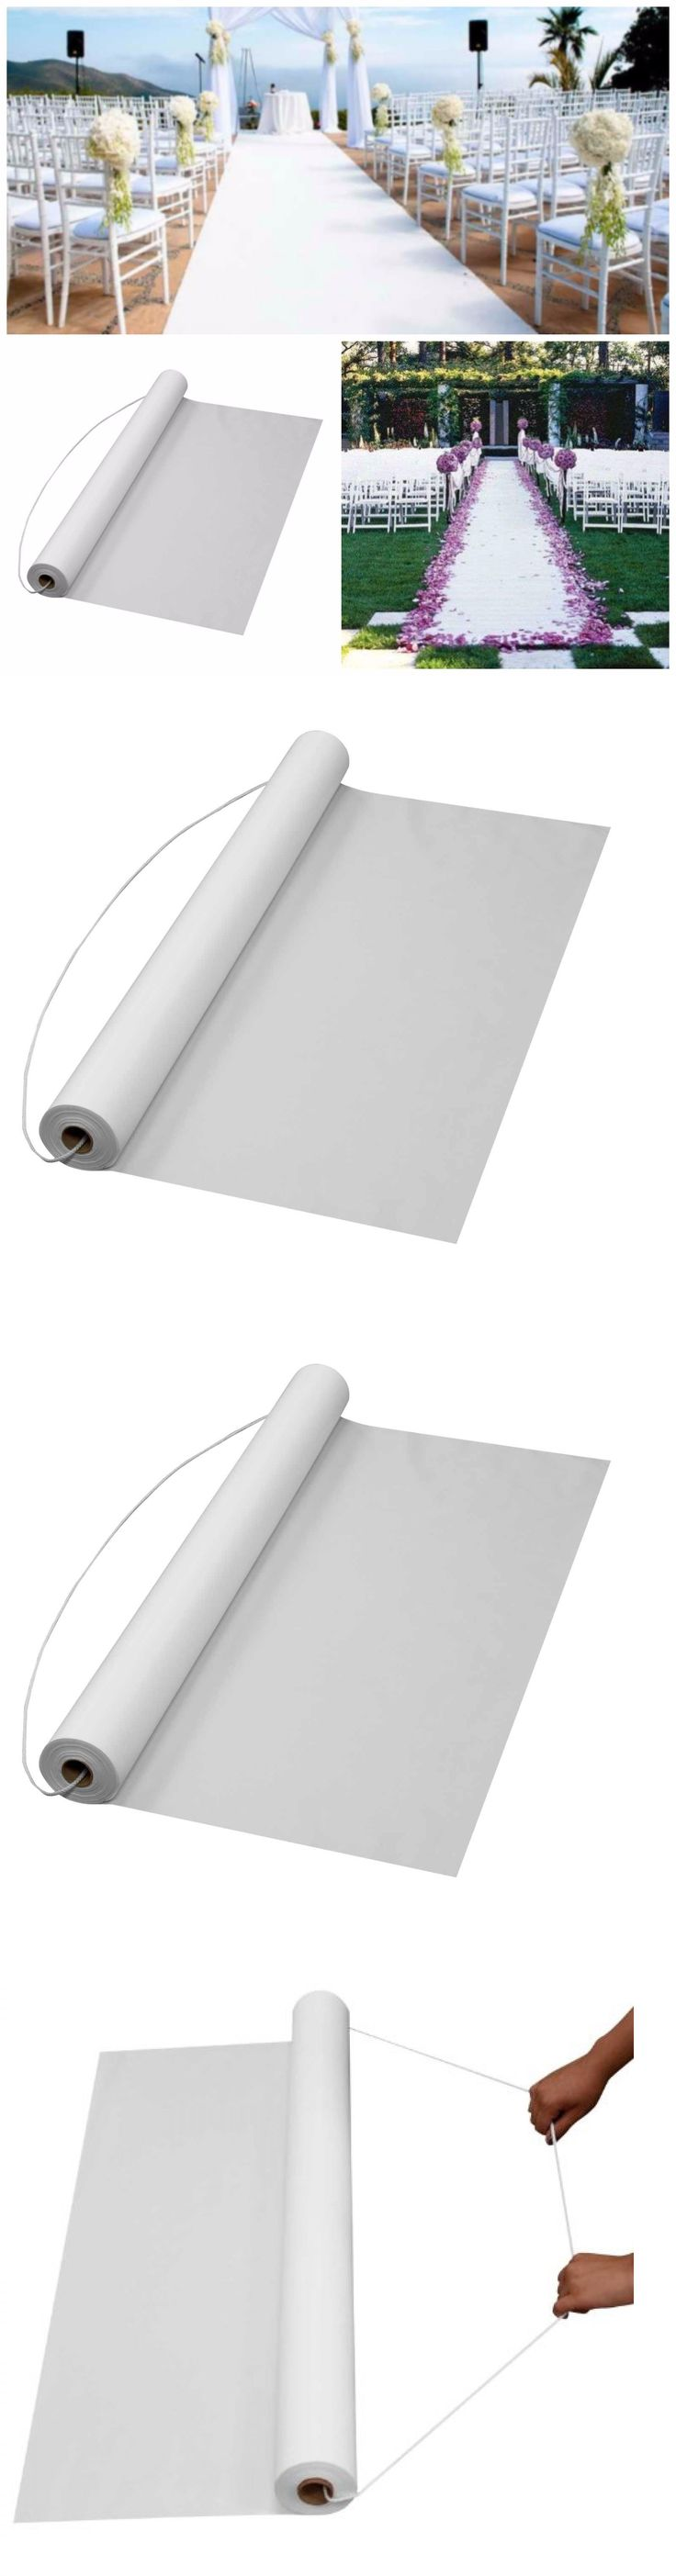 Aisle Runners 102423: White Aisle Runner Wedding Carpet Roll Indoor Outdoor Plastic Wedding Supplies -> BUY IT NOW ONLY: $30.35 on eBay!